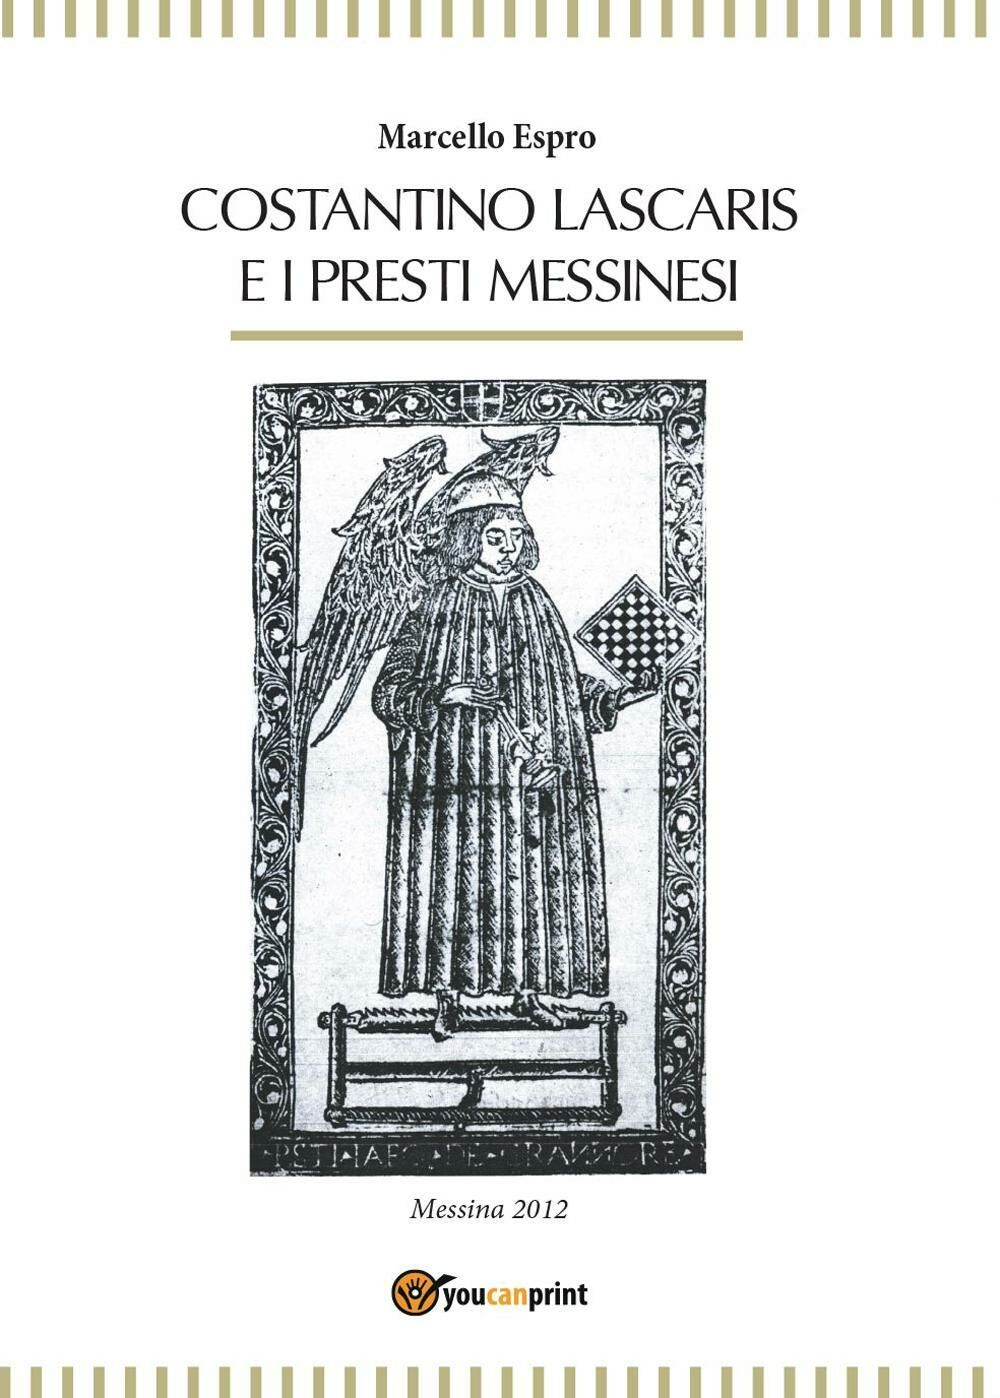 Costantino Lascaris e i presti messinesi